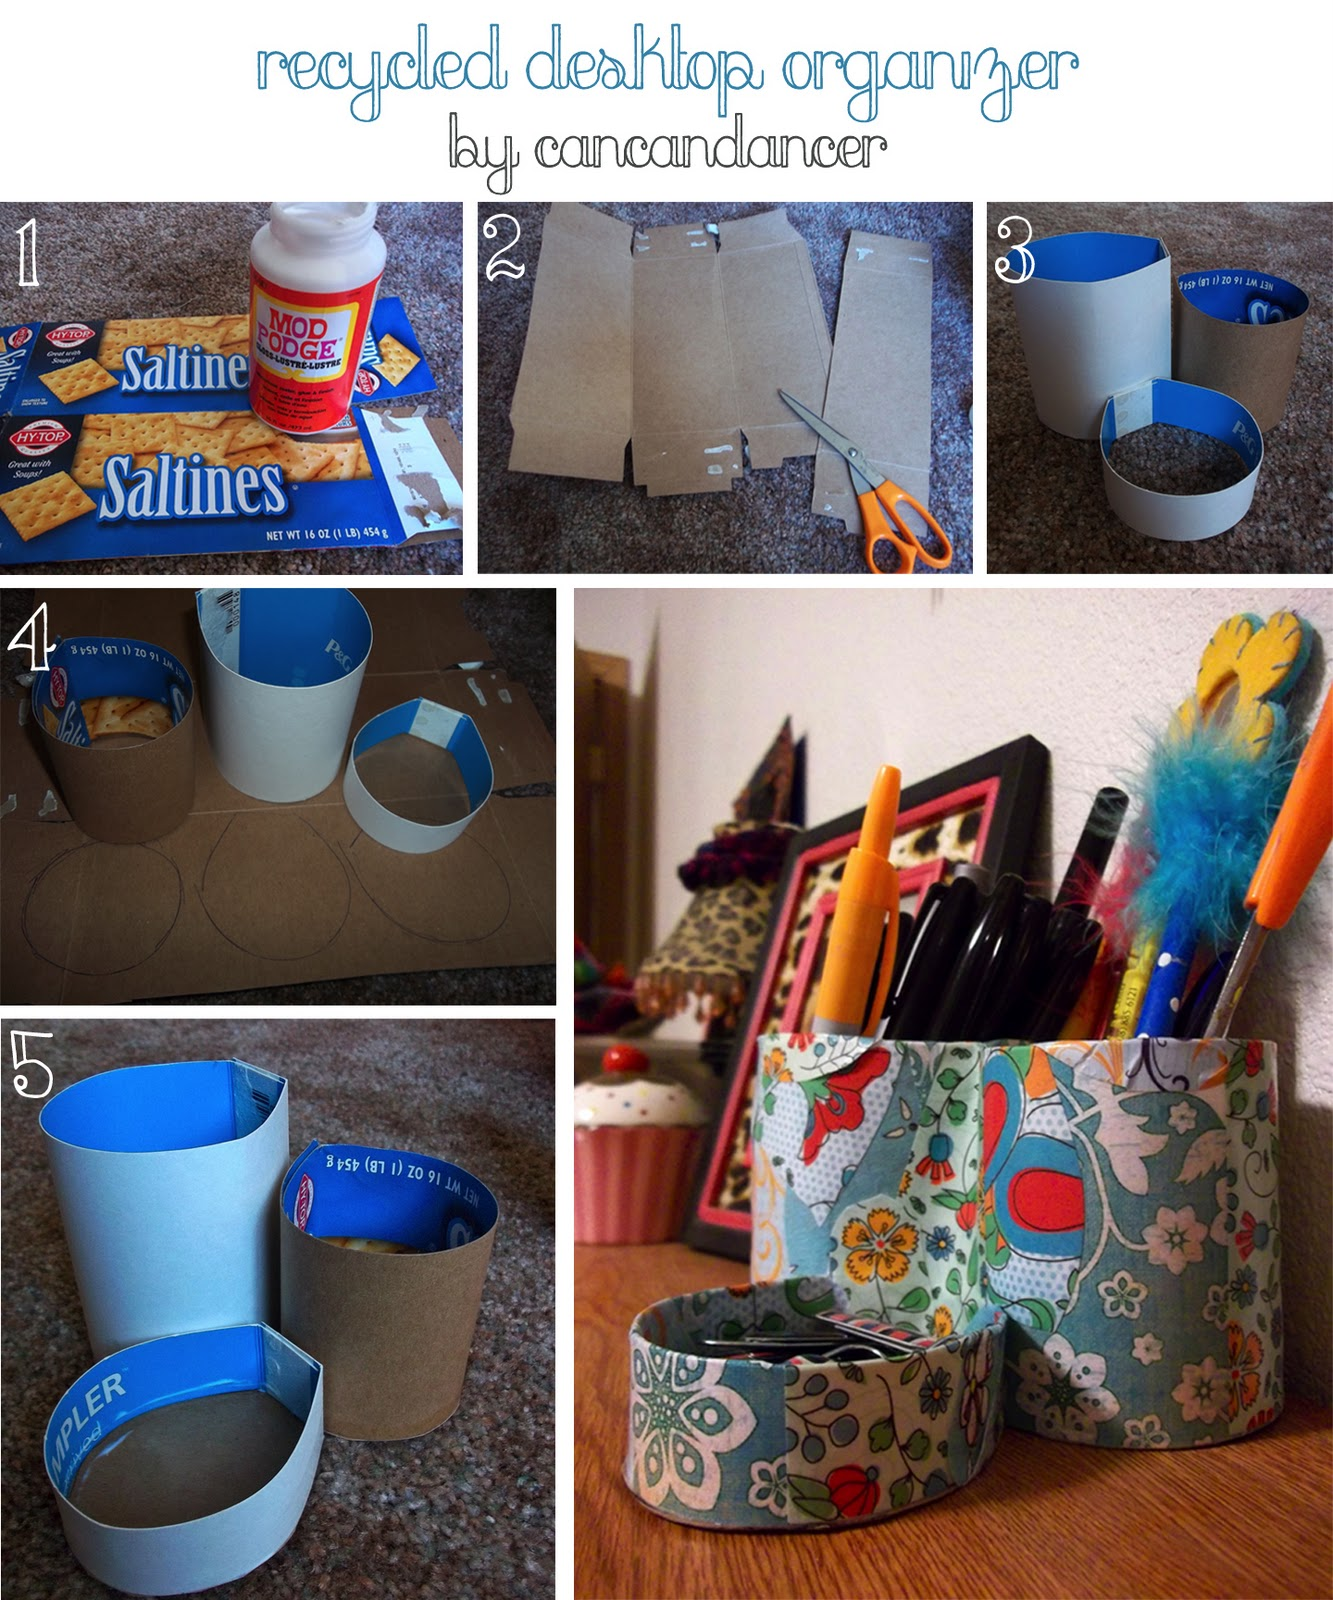 Diy Desk Organizer Interesting Diy Desk Organizer Tutorial D For Design